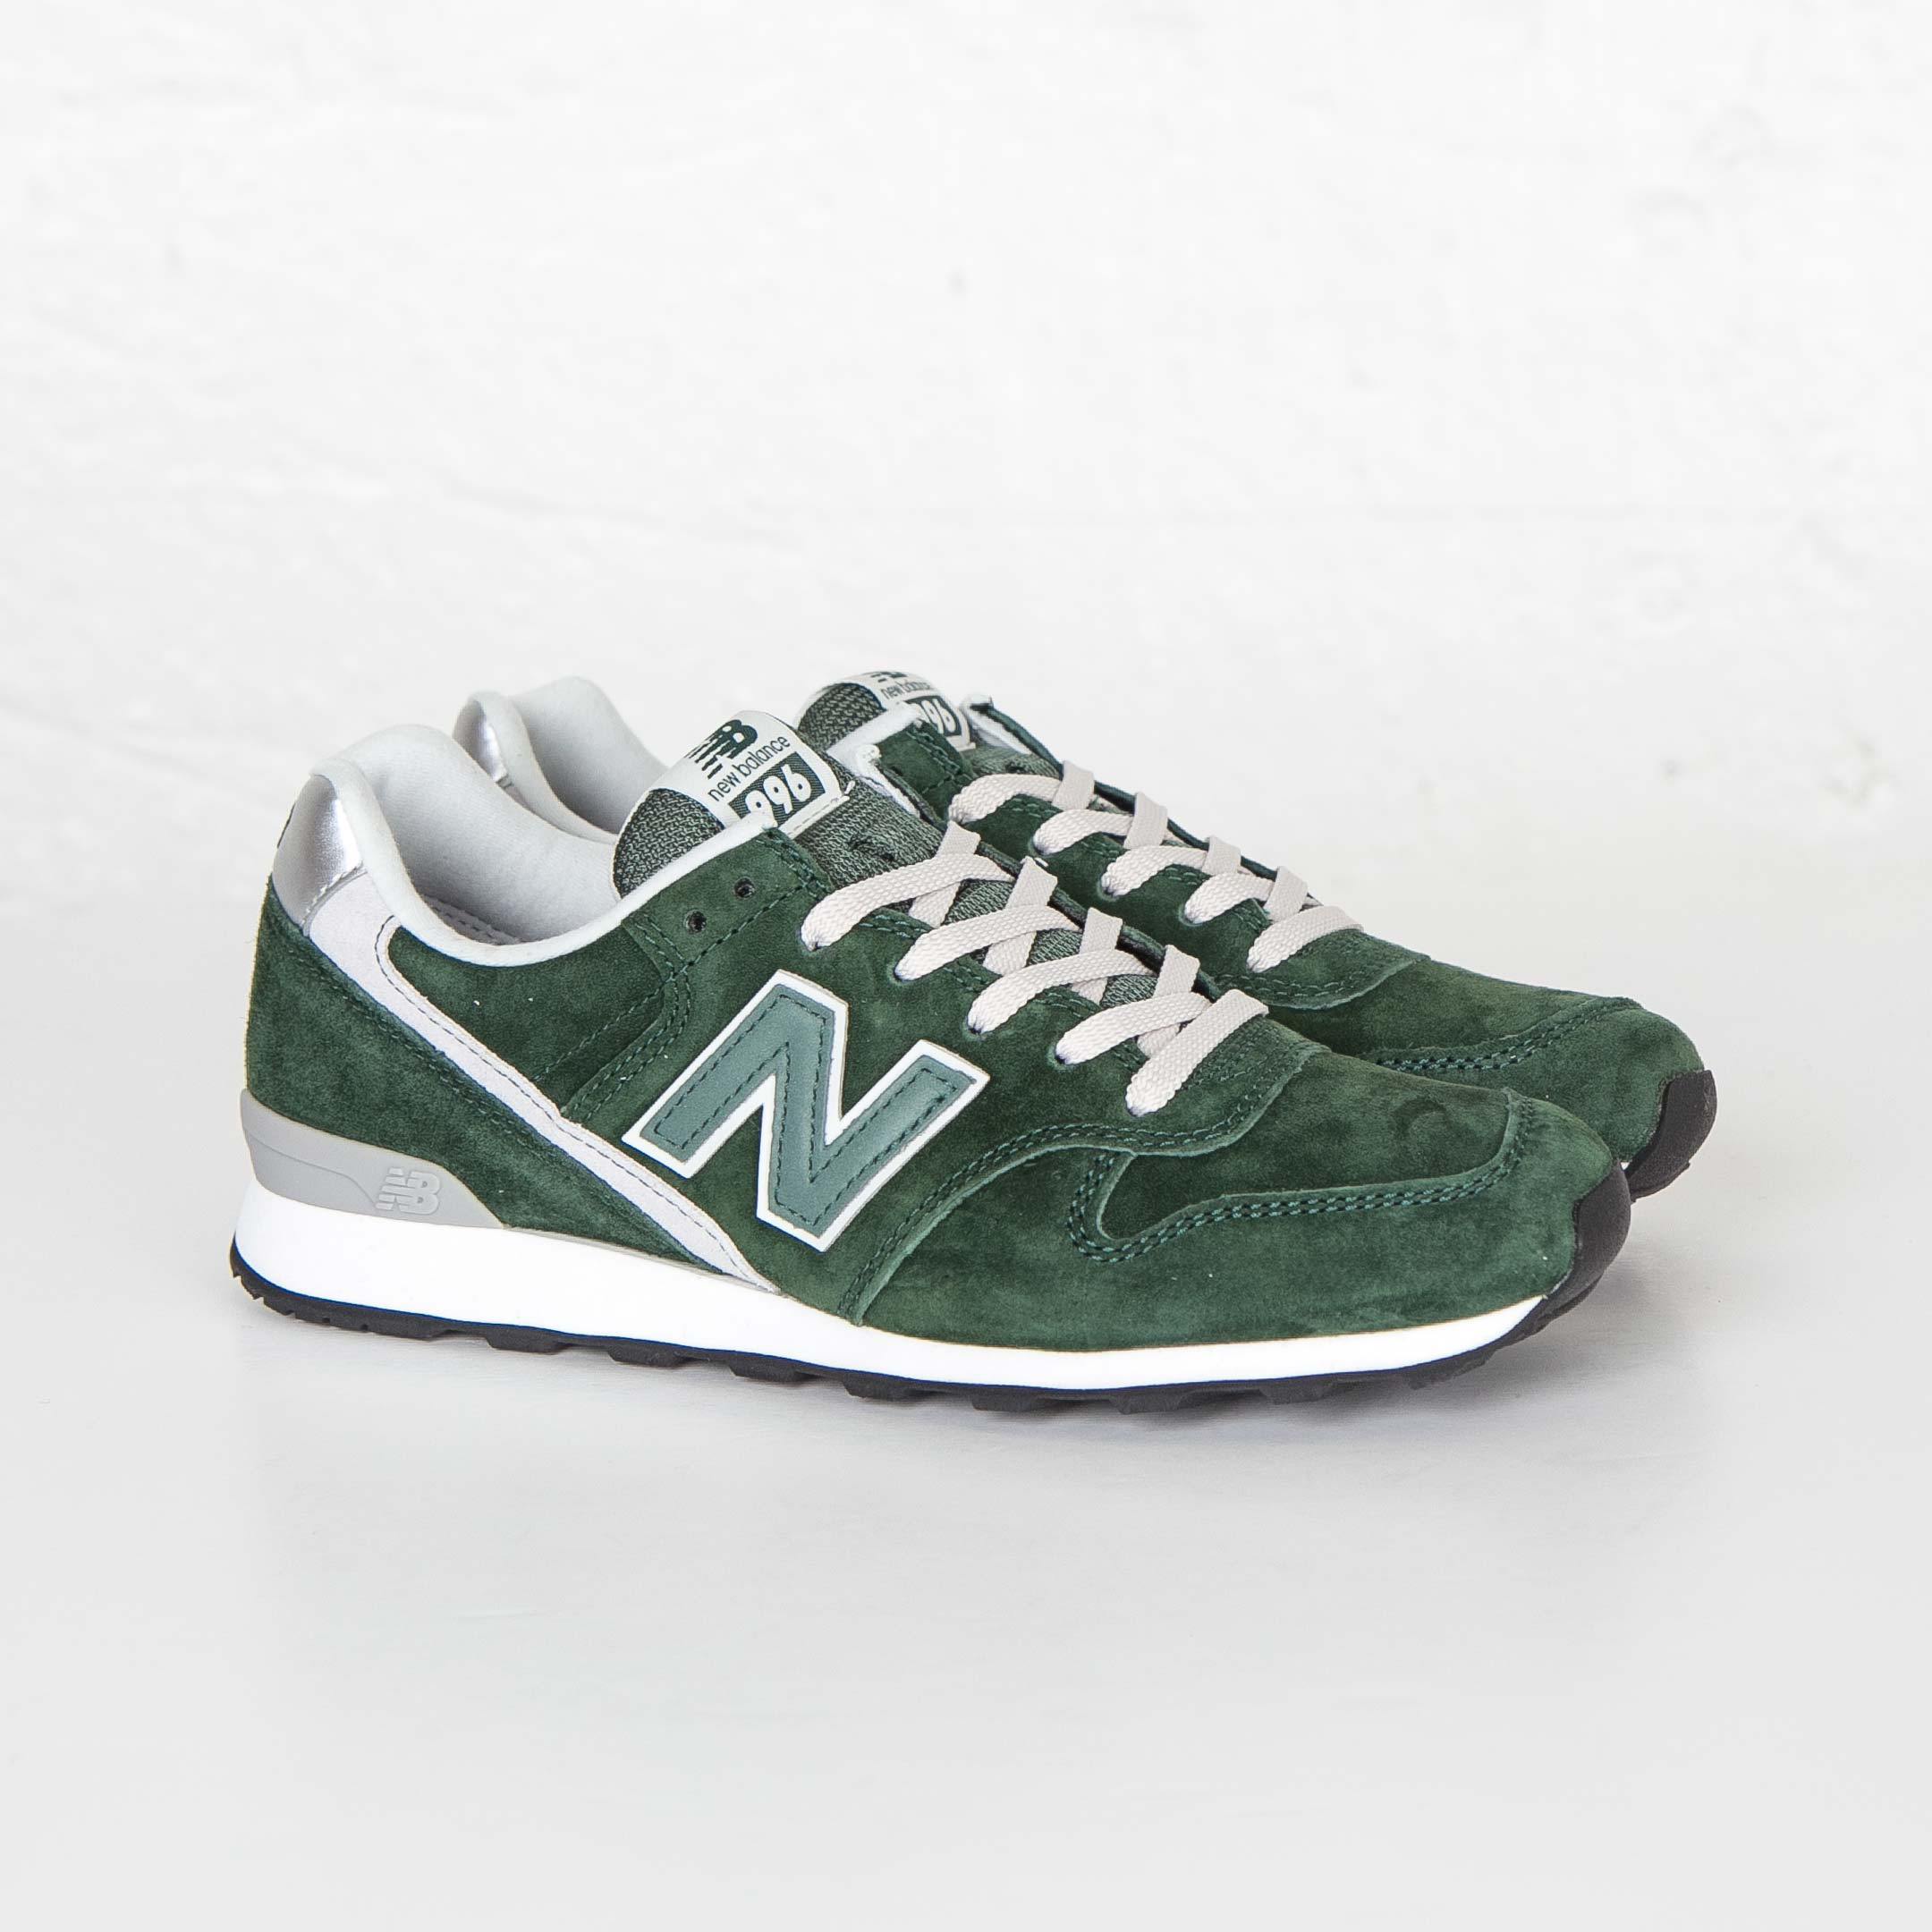 uk availability 4bdd9 c2434 New Balance WR996 - Wr996lc - Sneakersnstuff | sneakers ...